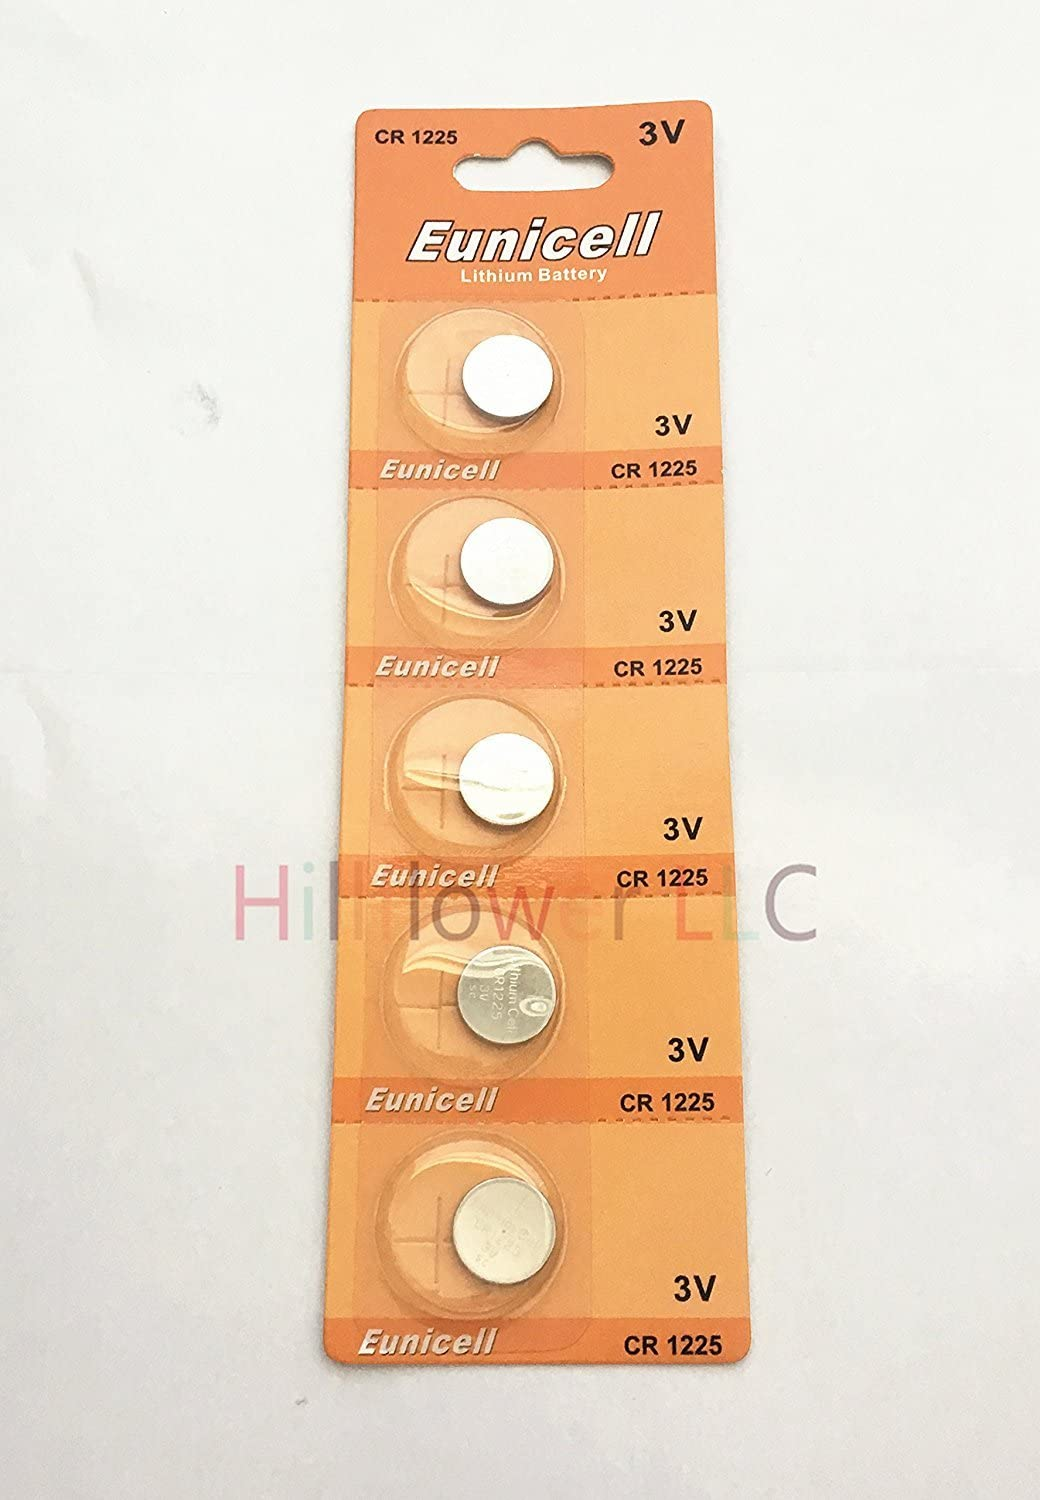 Hillflower 10 Piece CR1225 Card Blister 1225 Lithium 3V BR1225 lowest price B Department store